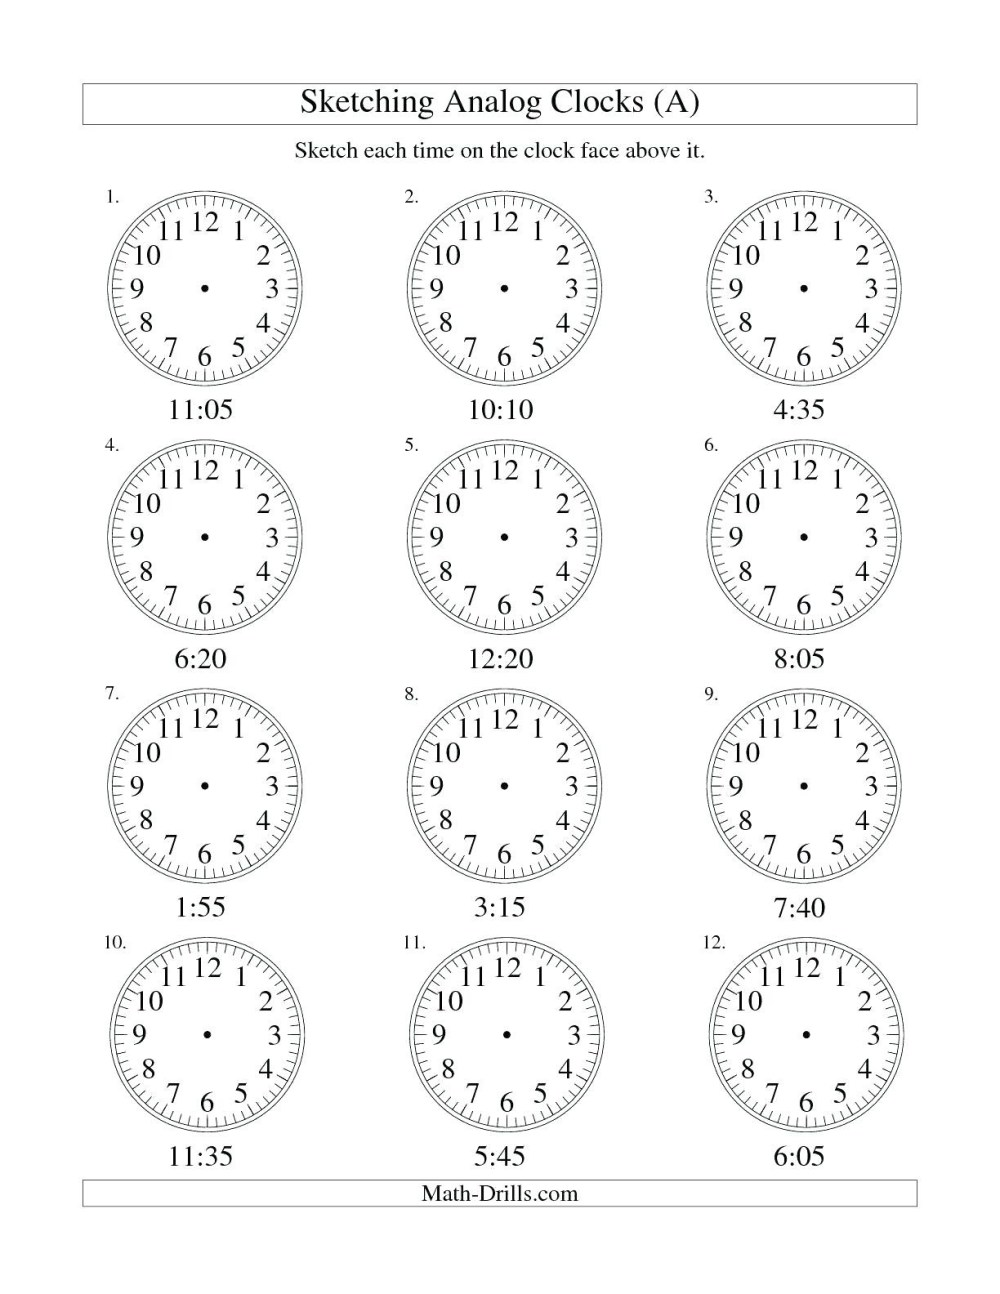 medium resolution of 3 Free Math Worksheets Second Grade 2 Addition Adding 2 Single Digit  Numbers - apocalomegaproductions.com